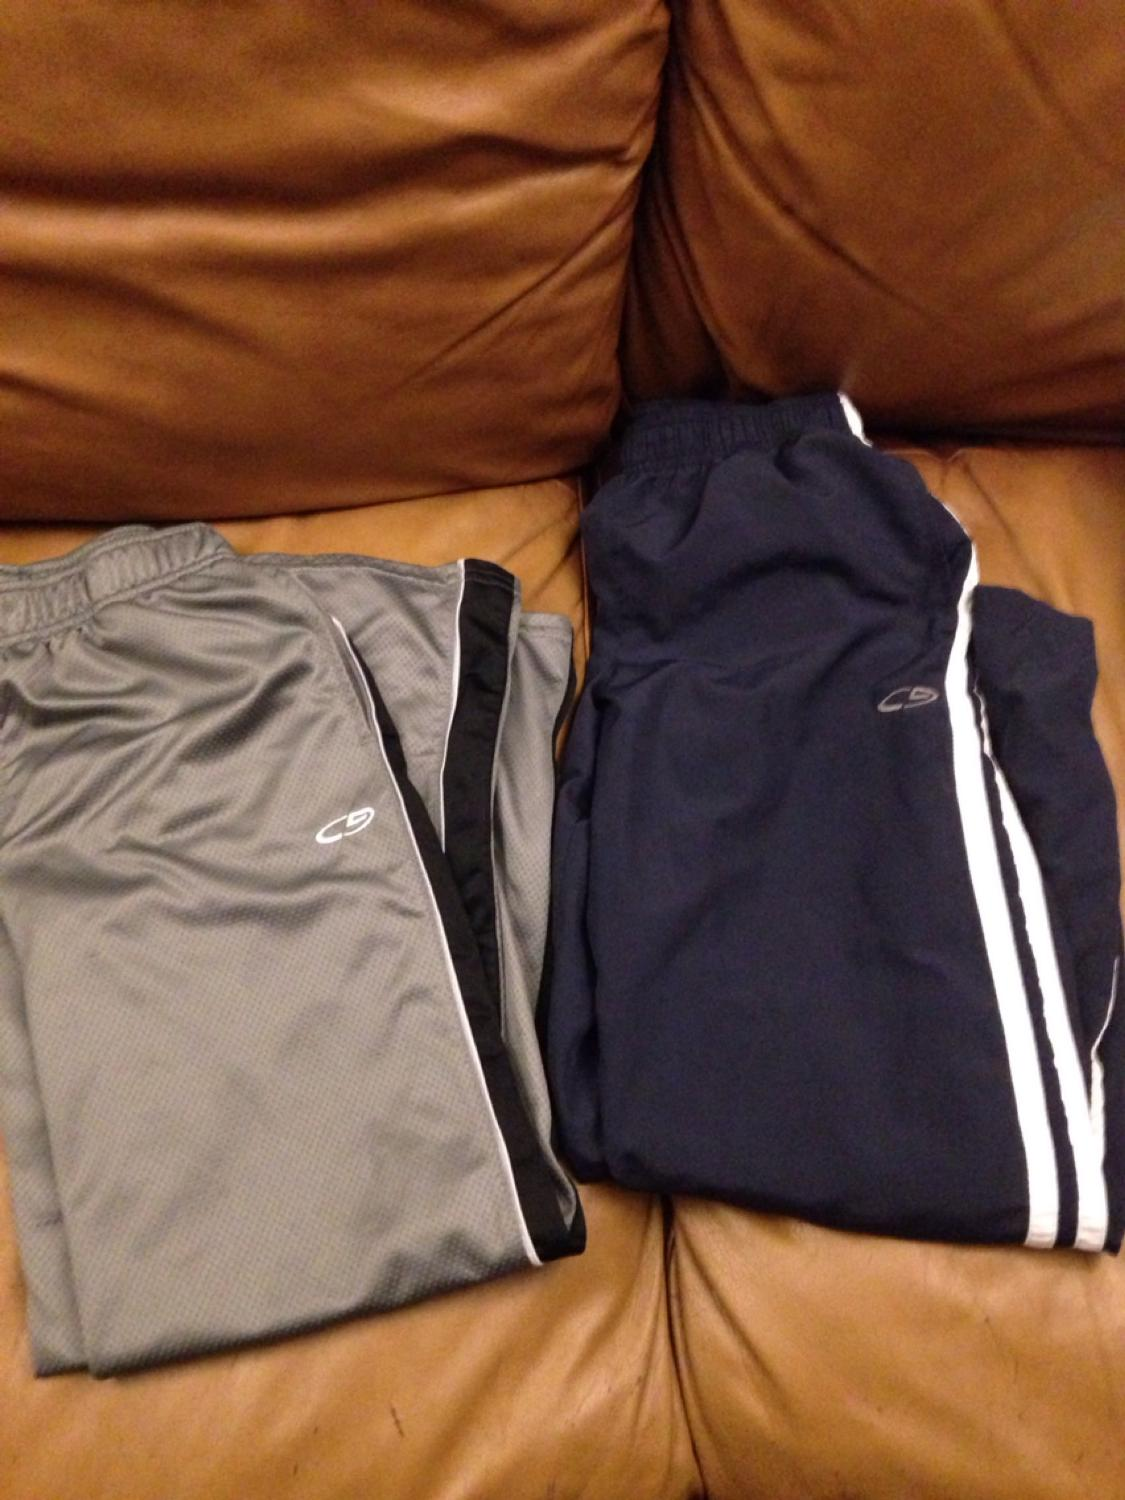 caef6acd66d4 Find more Boys Athletic Pants Size Lg 12 14 Champion Brand. for sale ...